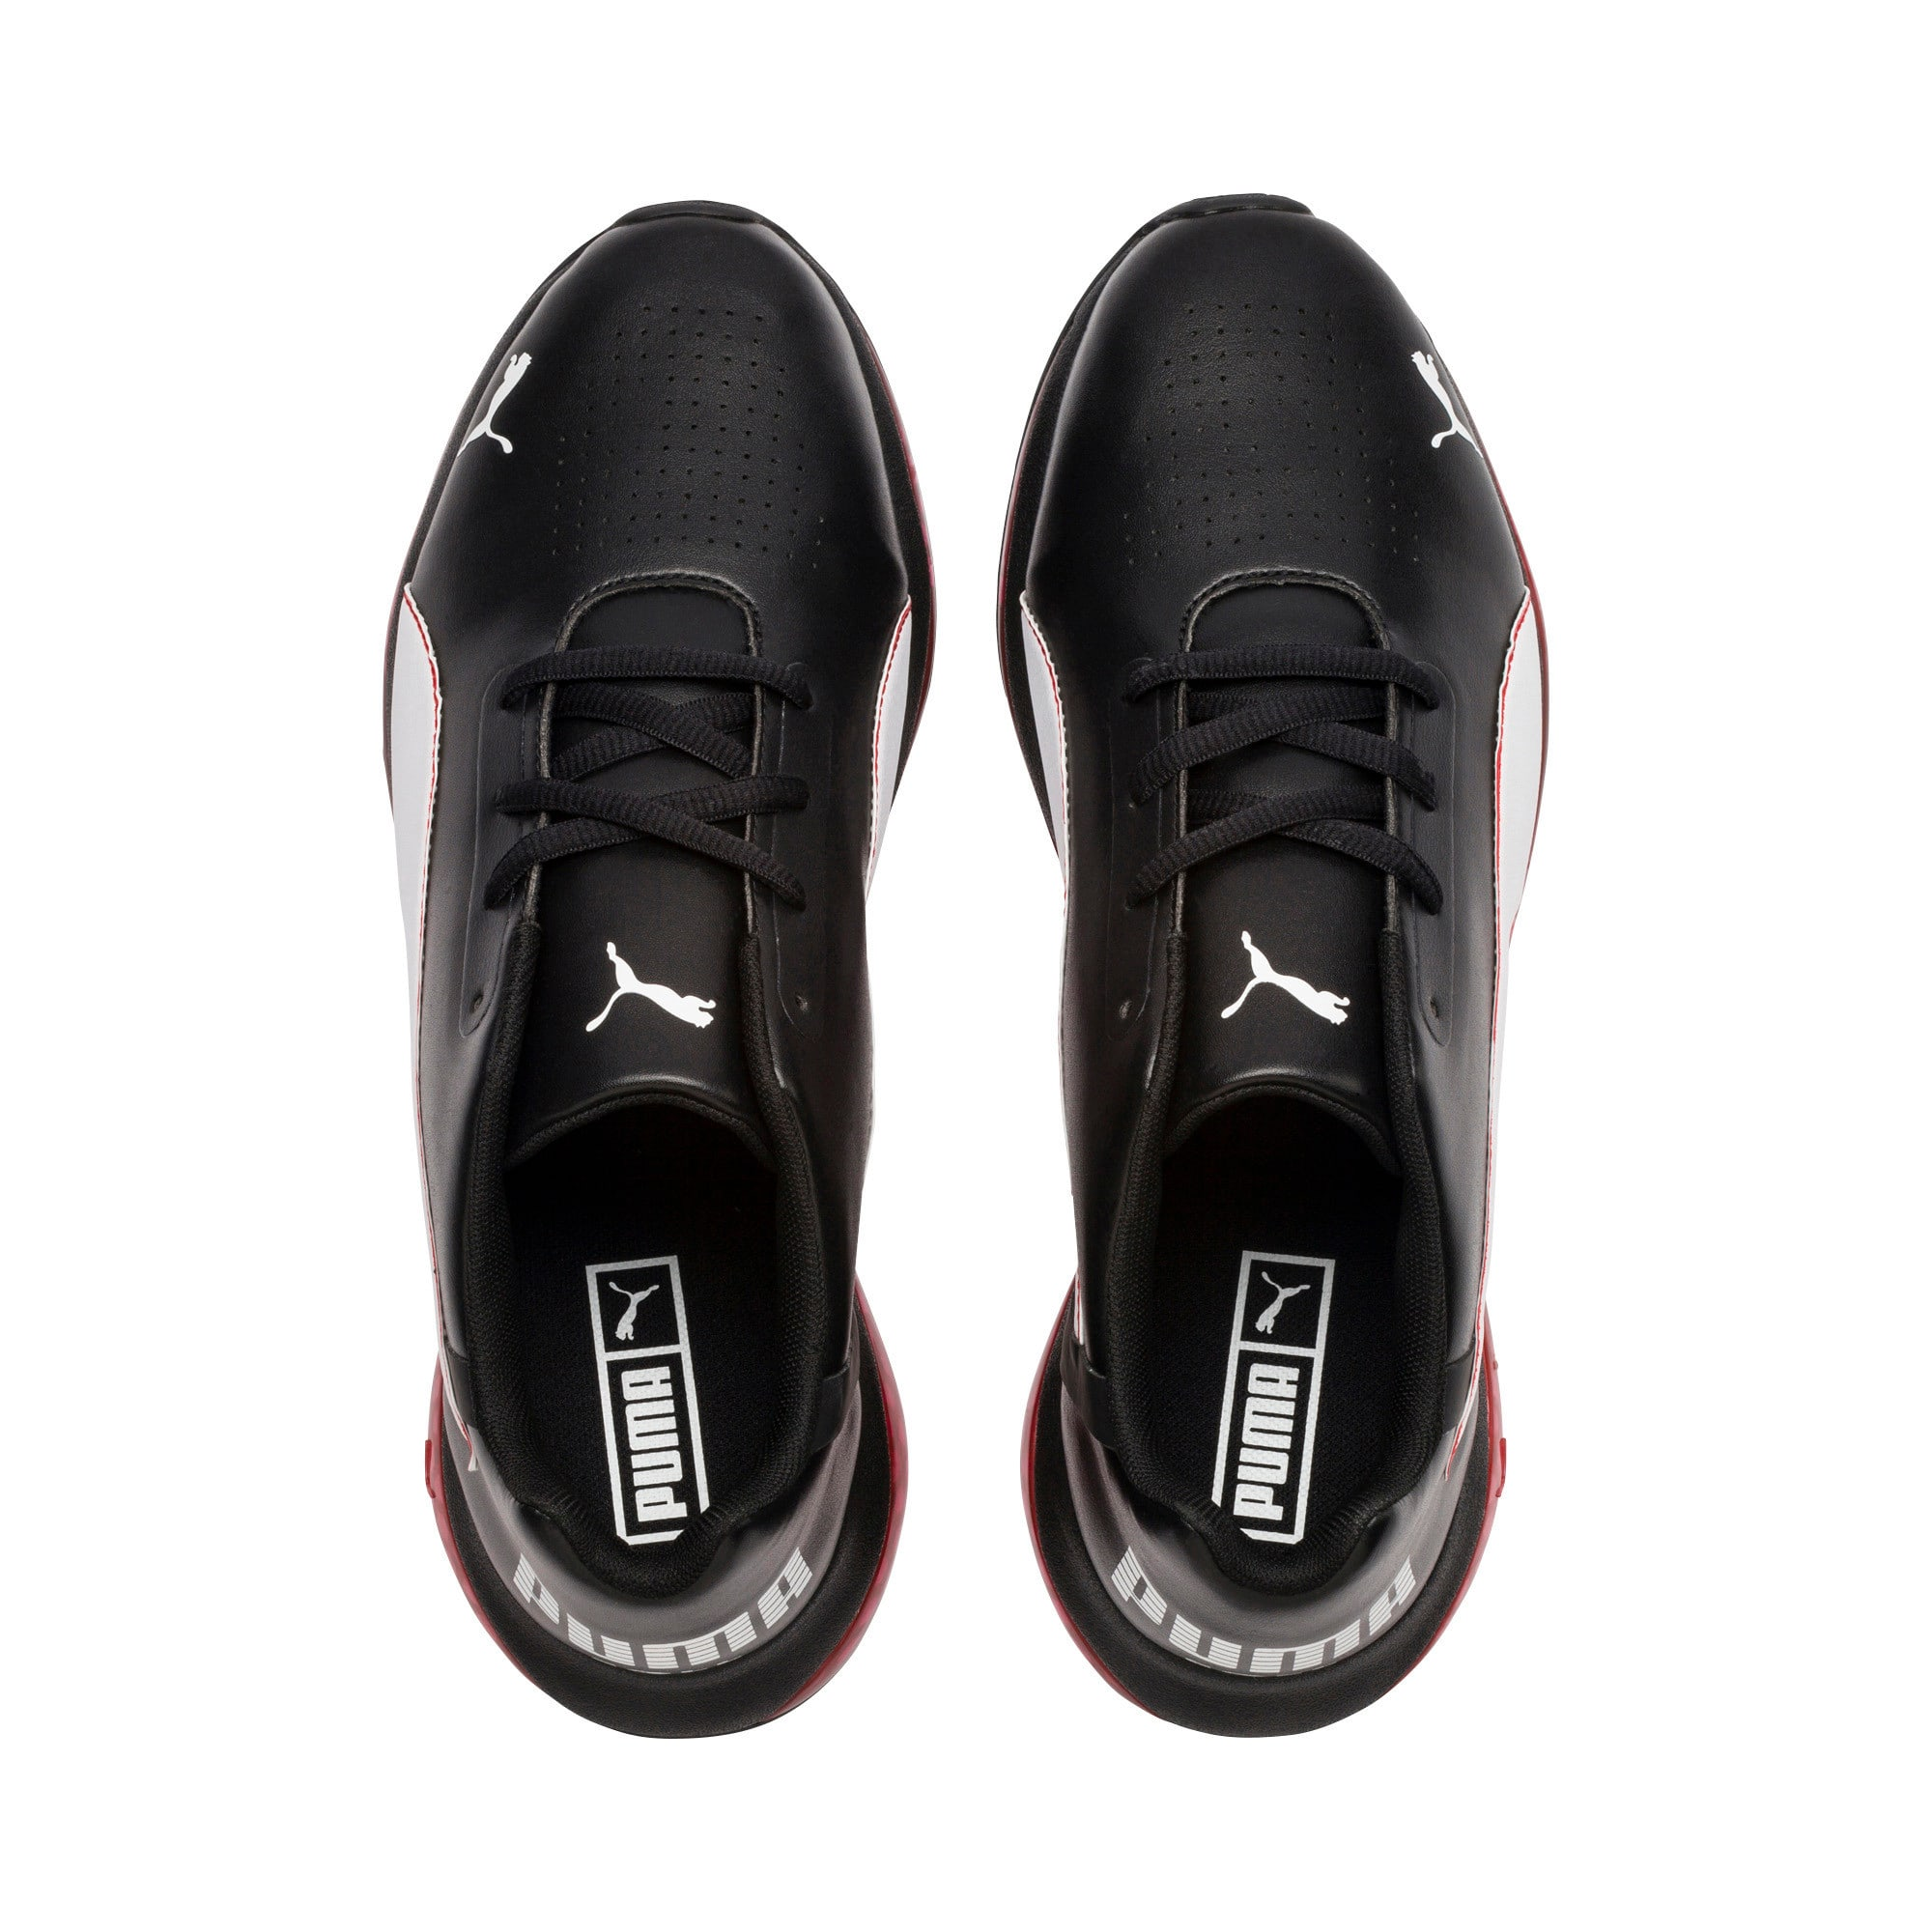 Thumbnail 6 of CELL Ultimate SL Running Shoes, Pma Blk-Pma Wht-Hgh Rsk Rd, medium